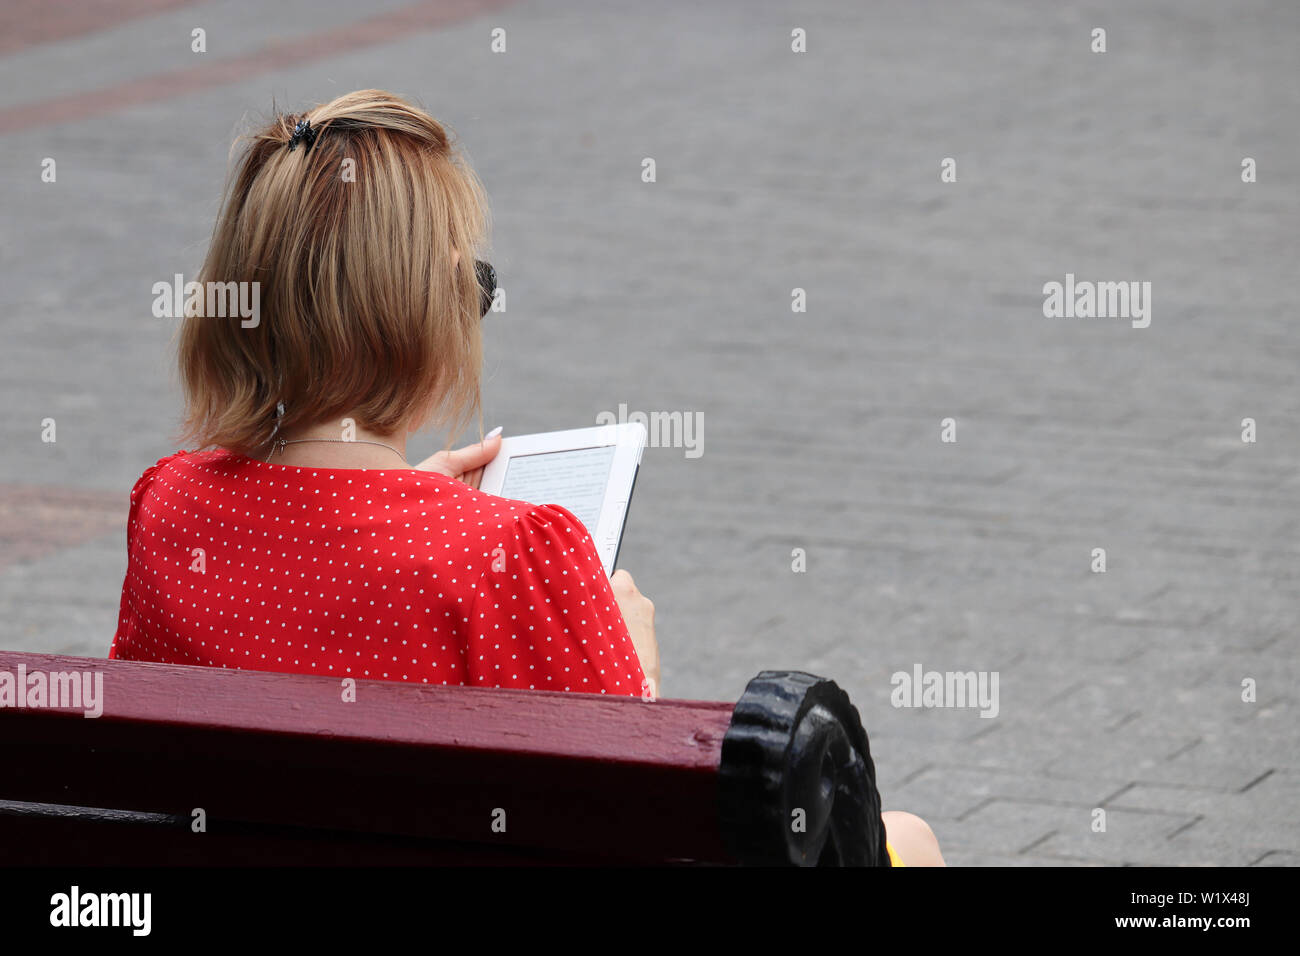 Young woman reads ebook on sitting on a bench on a city street. Concept of student, education, summer leisure - Stock Image